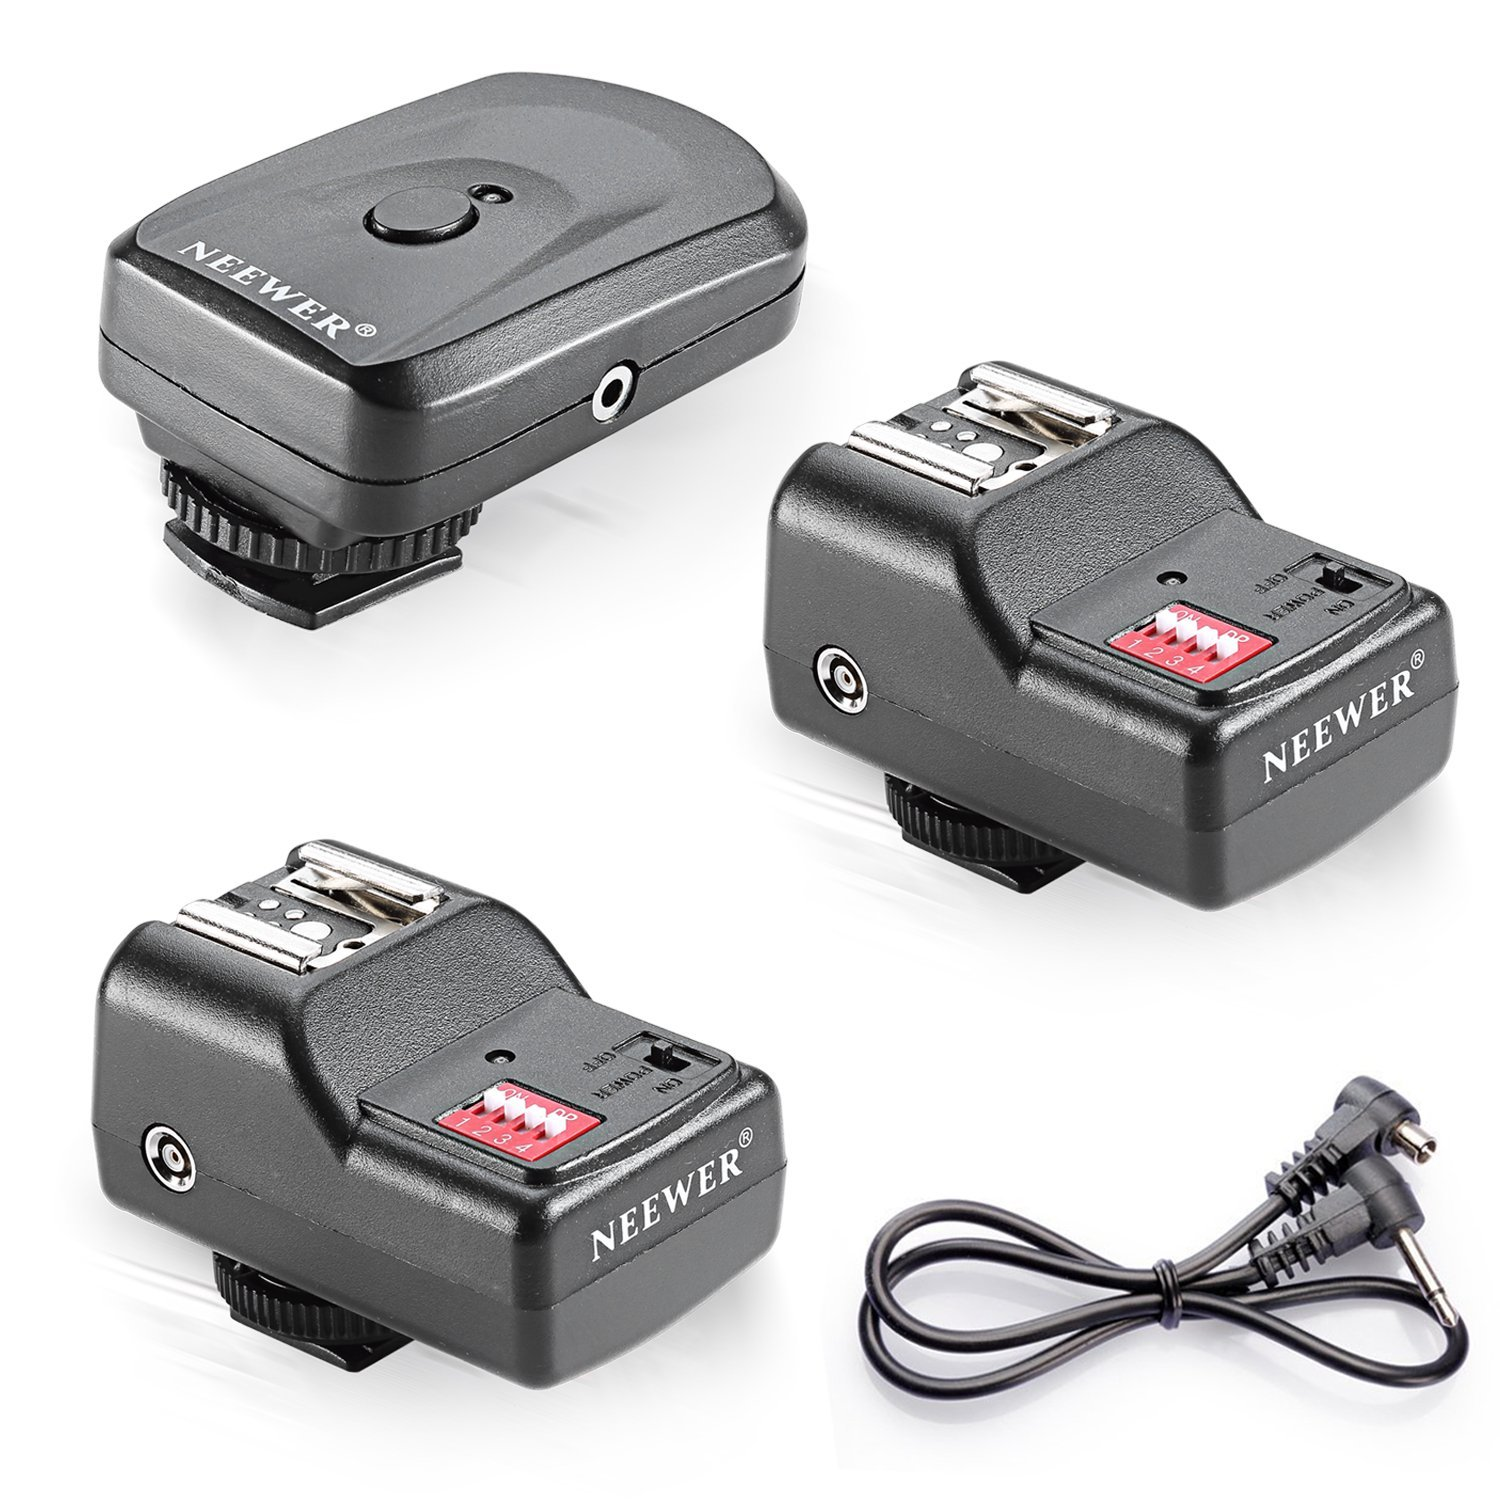 Neewer Wireless Speedlite Receiver Universal Image 1